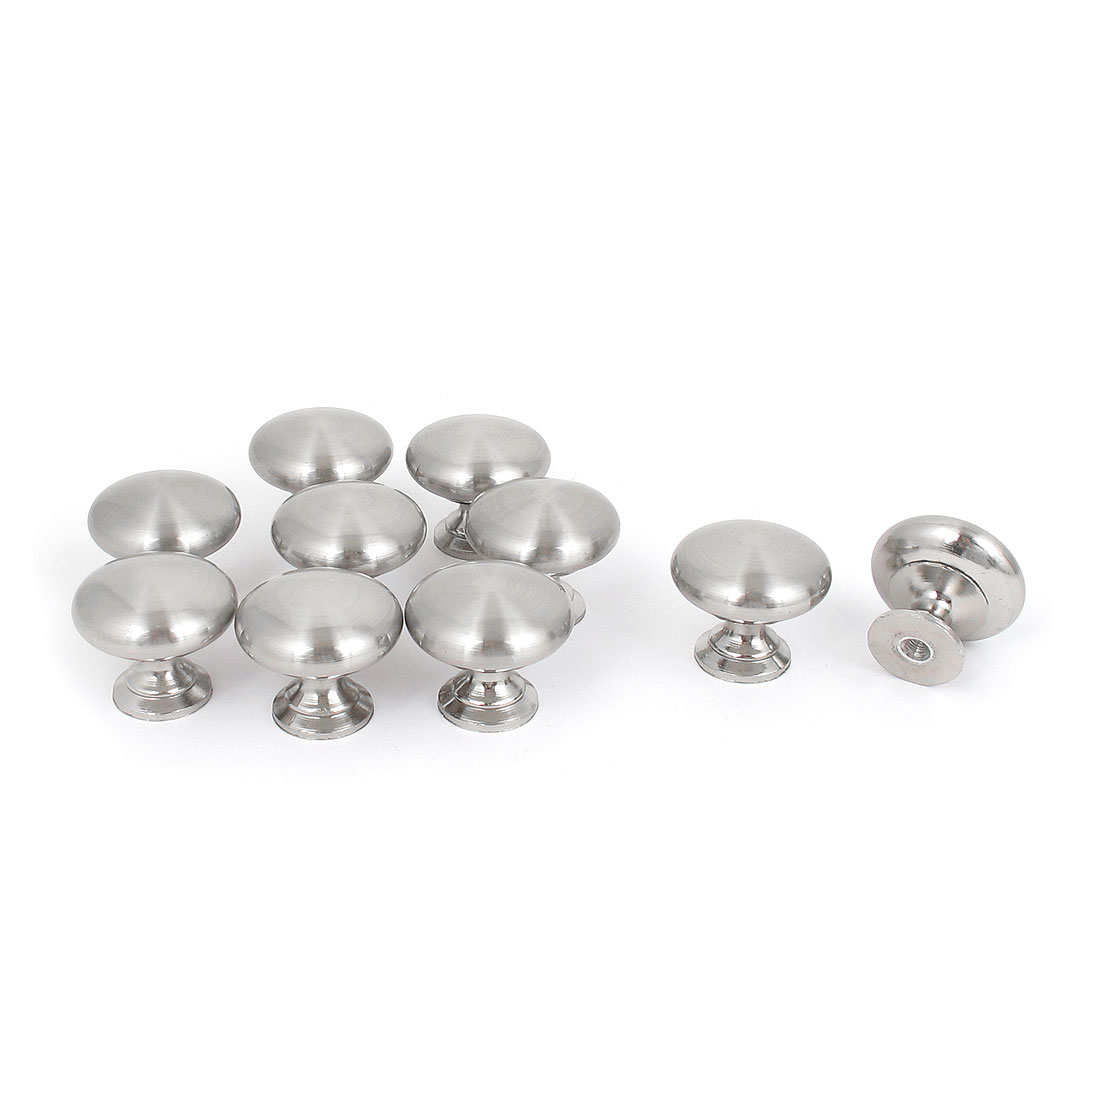 Home Closet Drawer Round Door Pull Knob Hardware 30mm Diameter 10 PCS